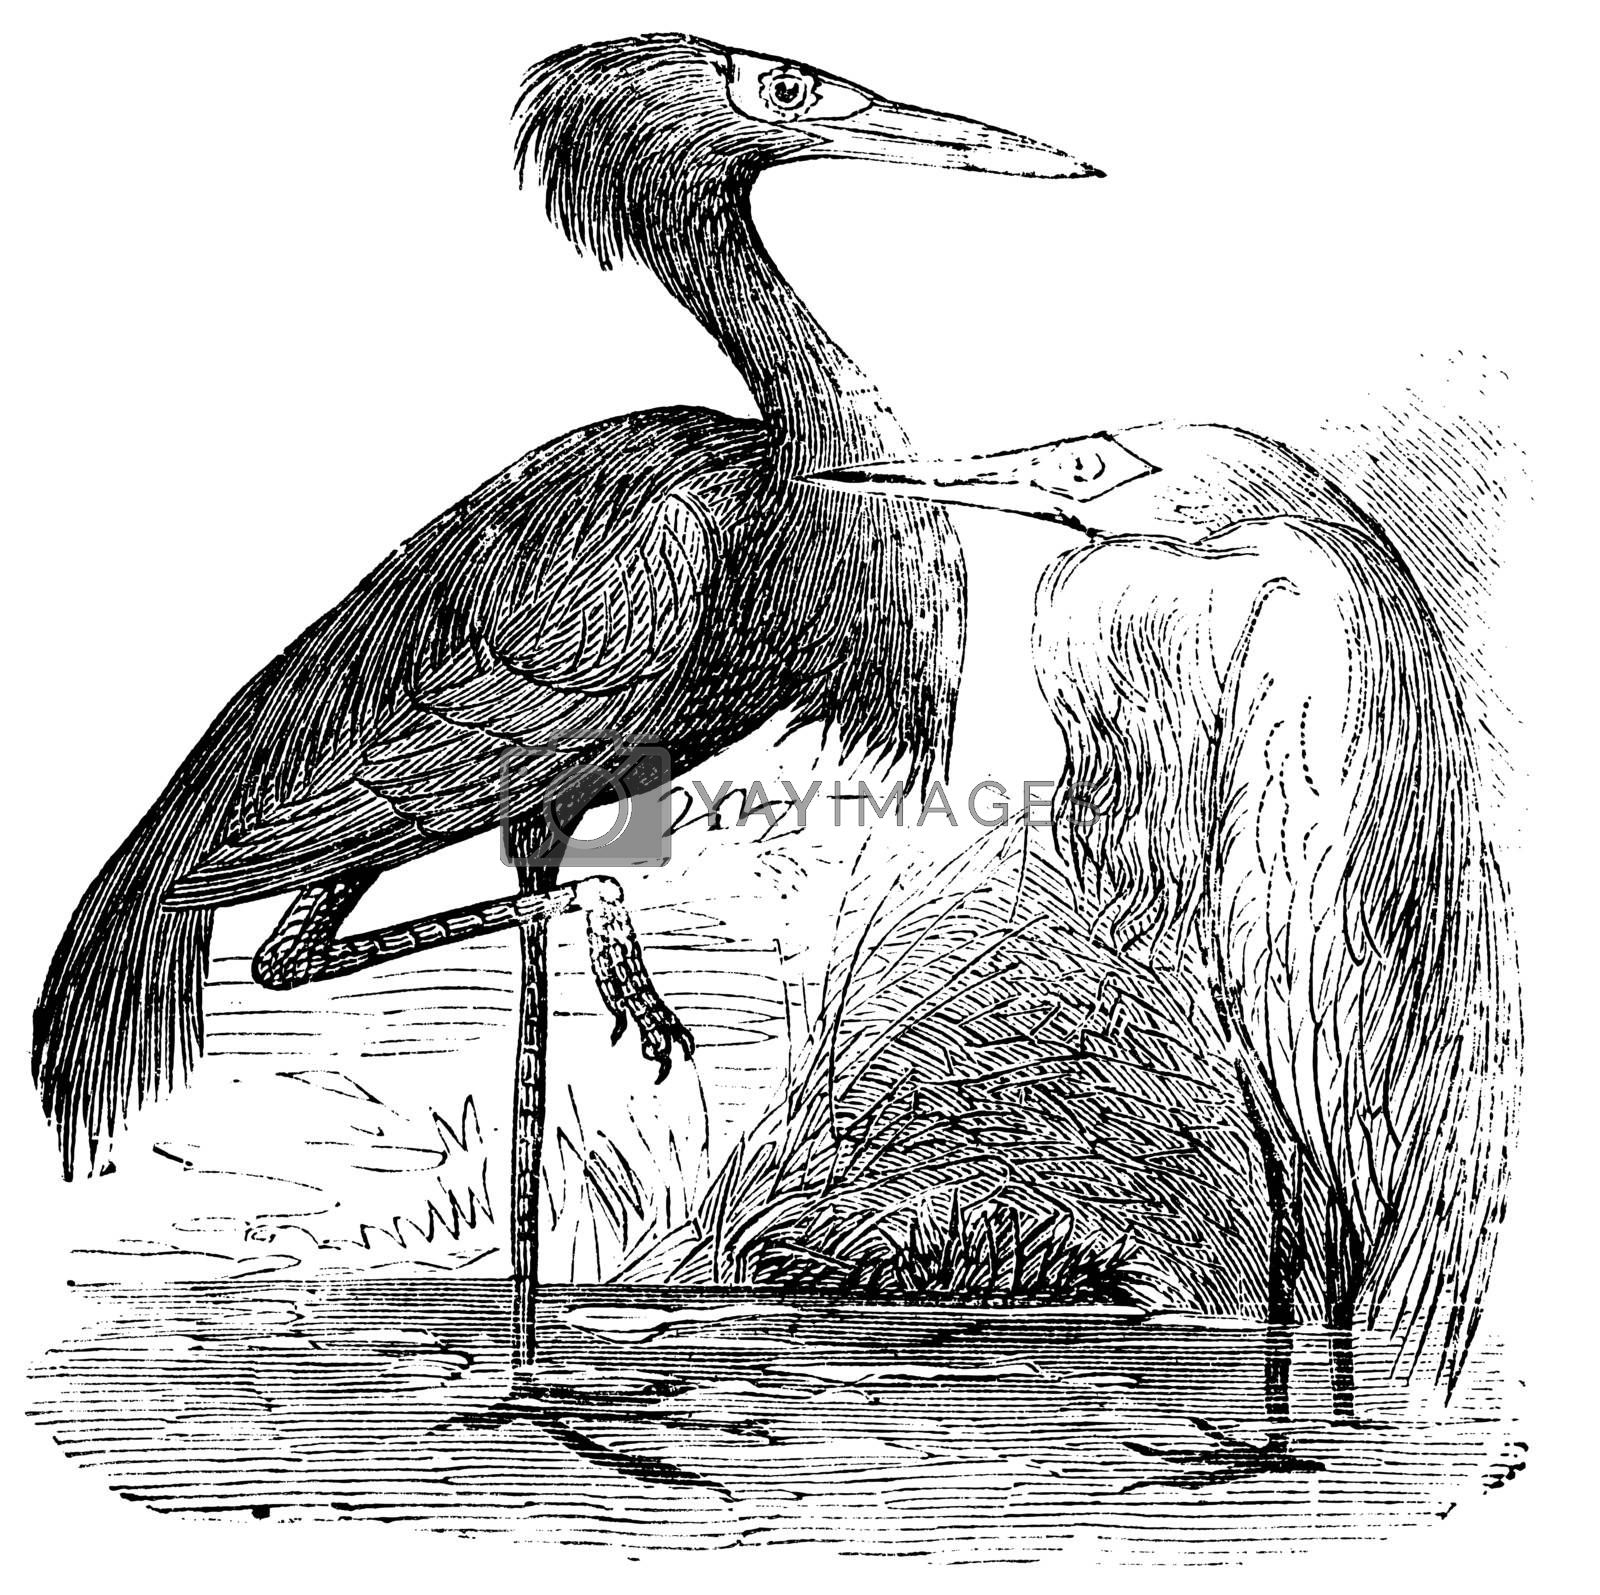 Engraving of a Reddish Egret (ardea rufa or Egretta rufescens). Old vintage engraved illustration of the reddish egret or heron in his environment.